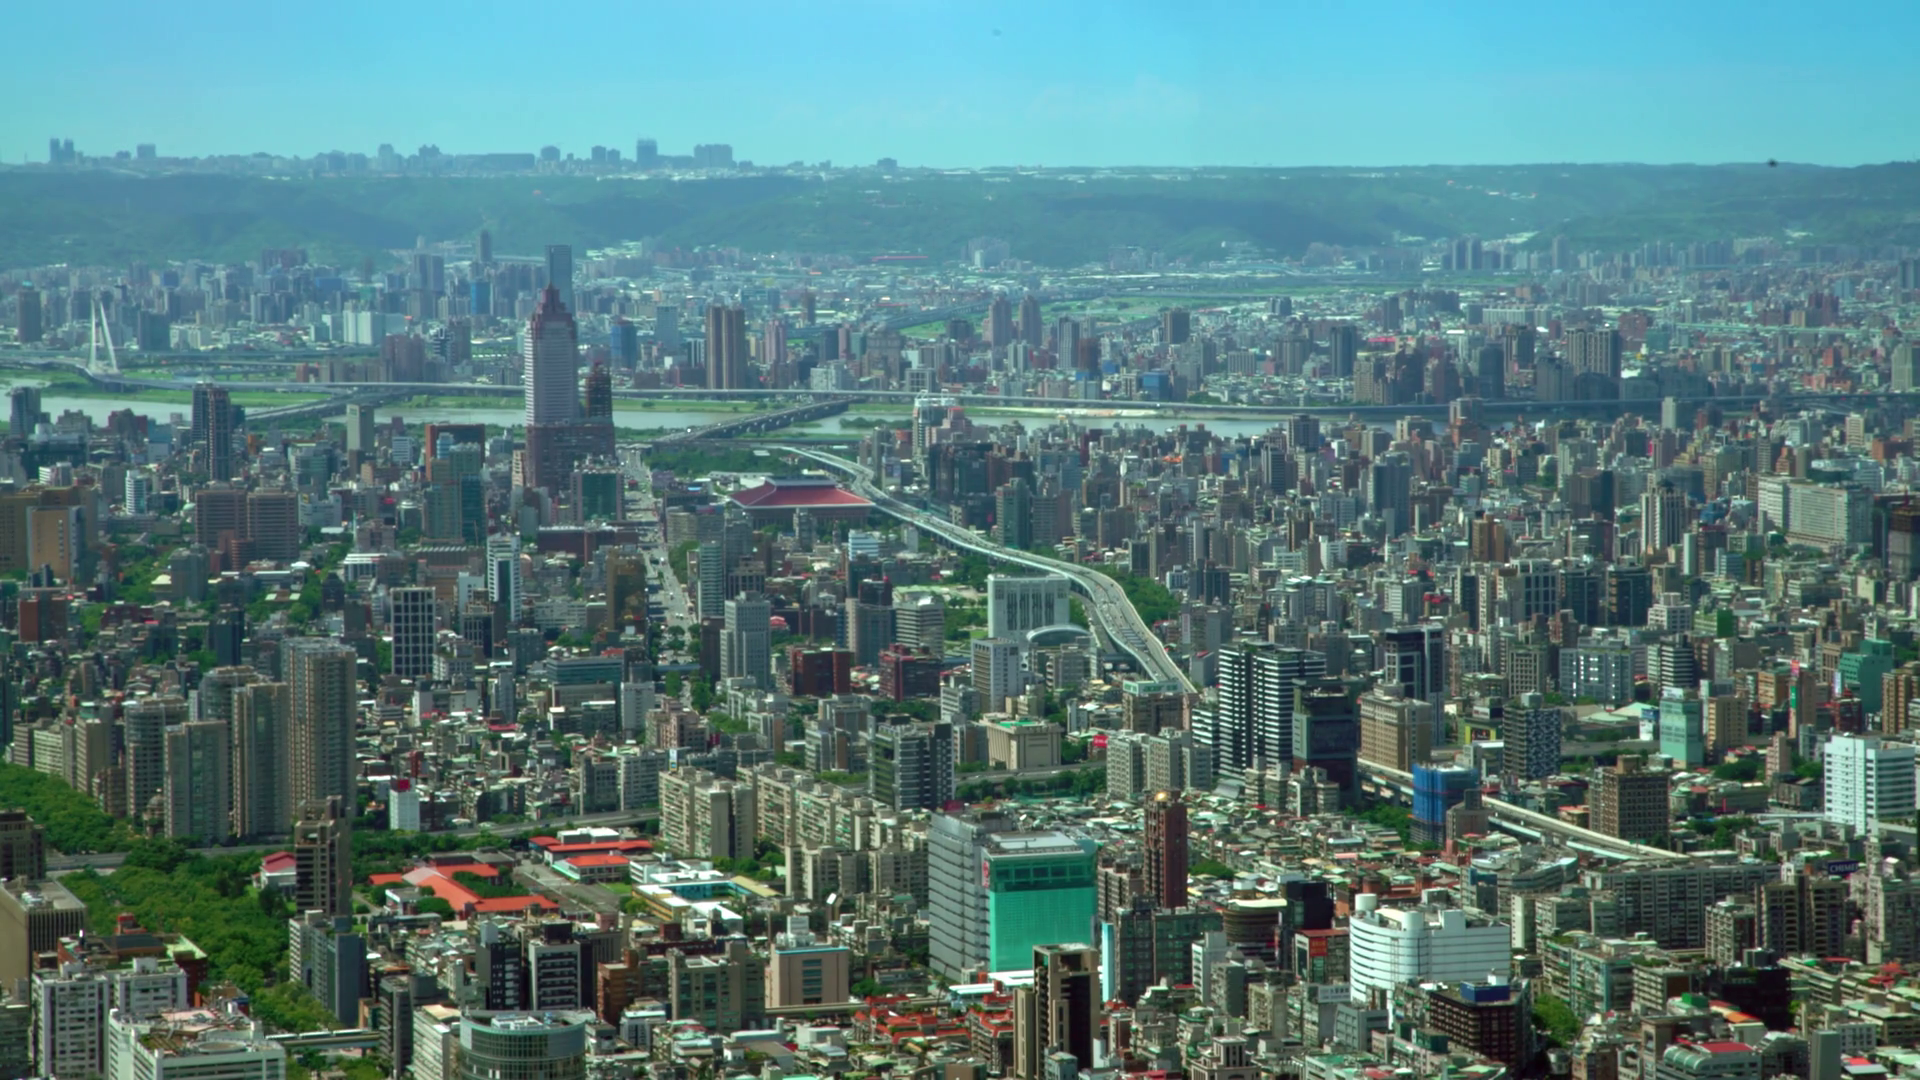 4K Aerial view of the Downtown Taipei city buildings with mountains ...